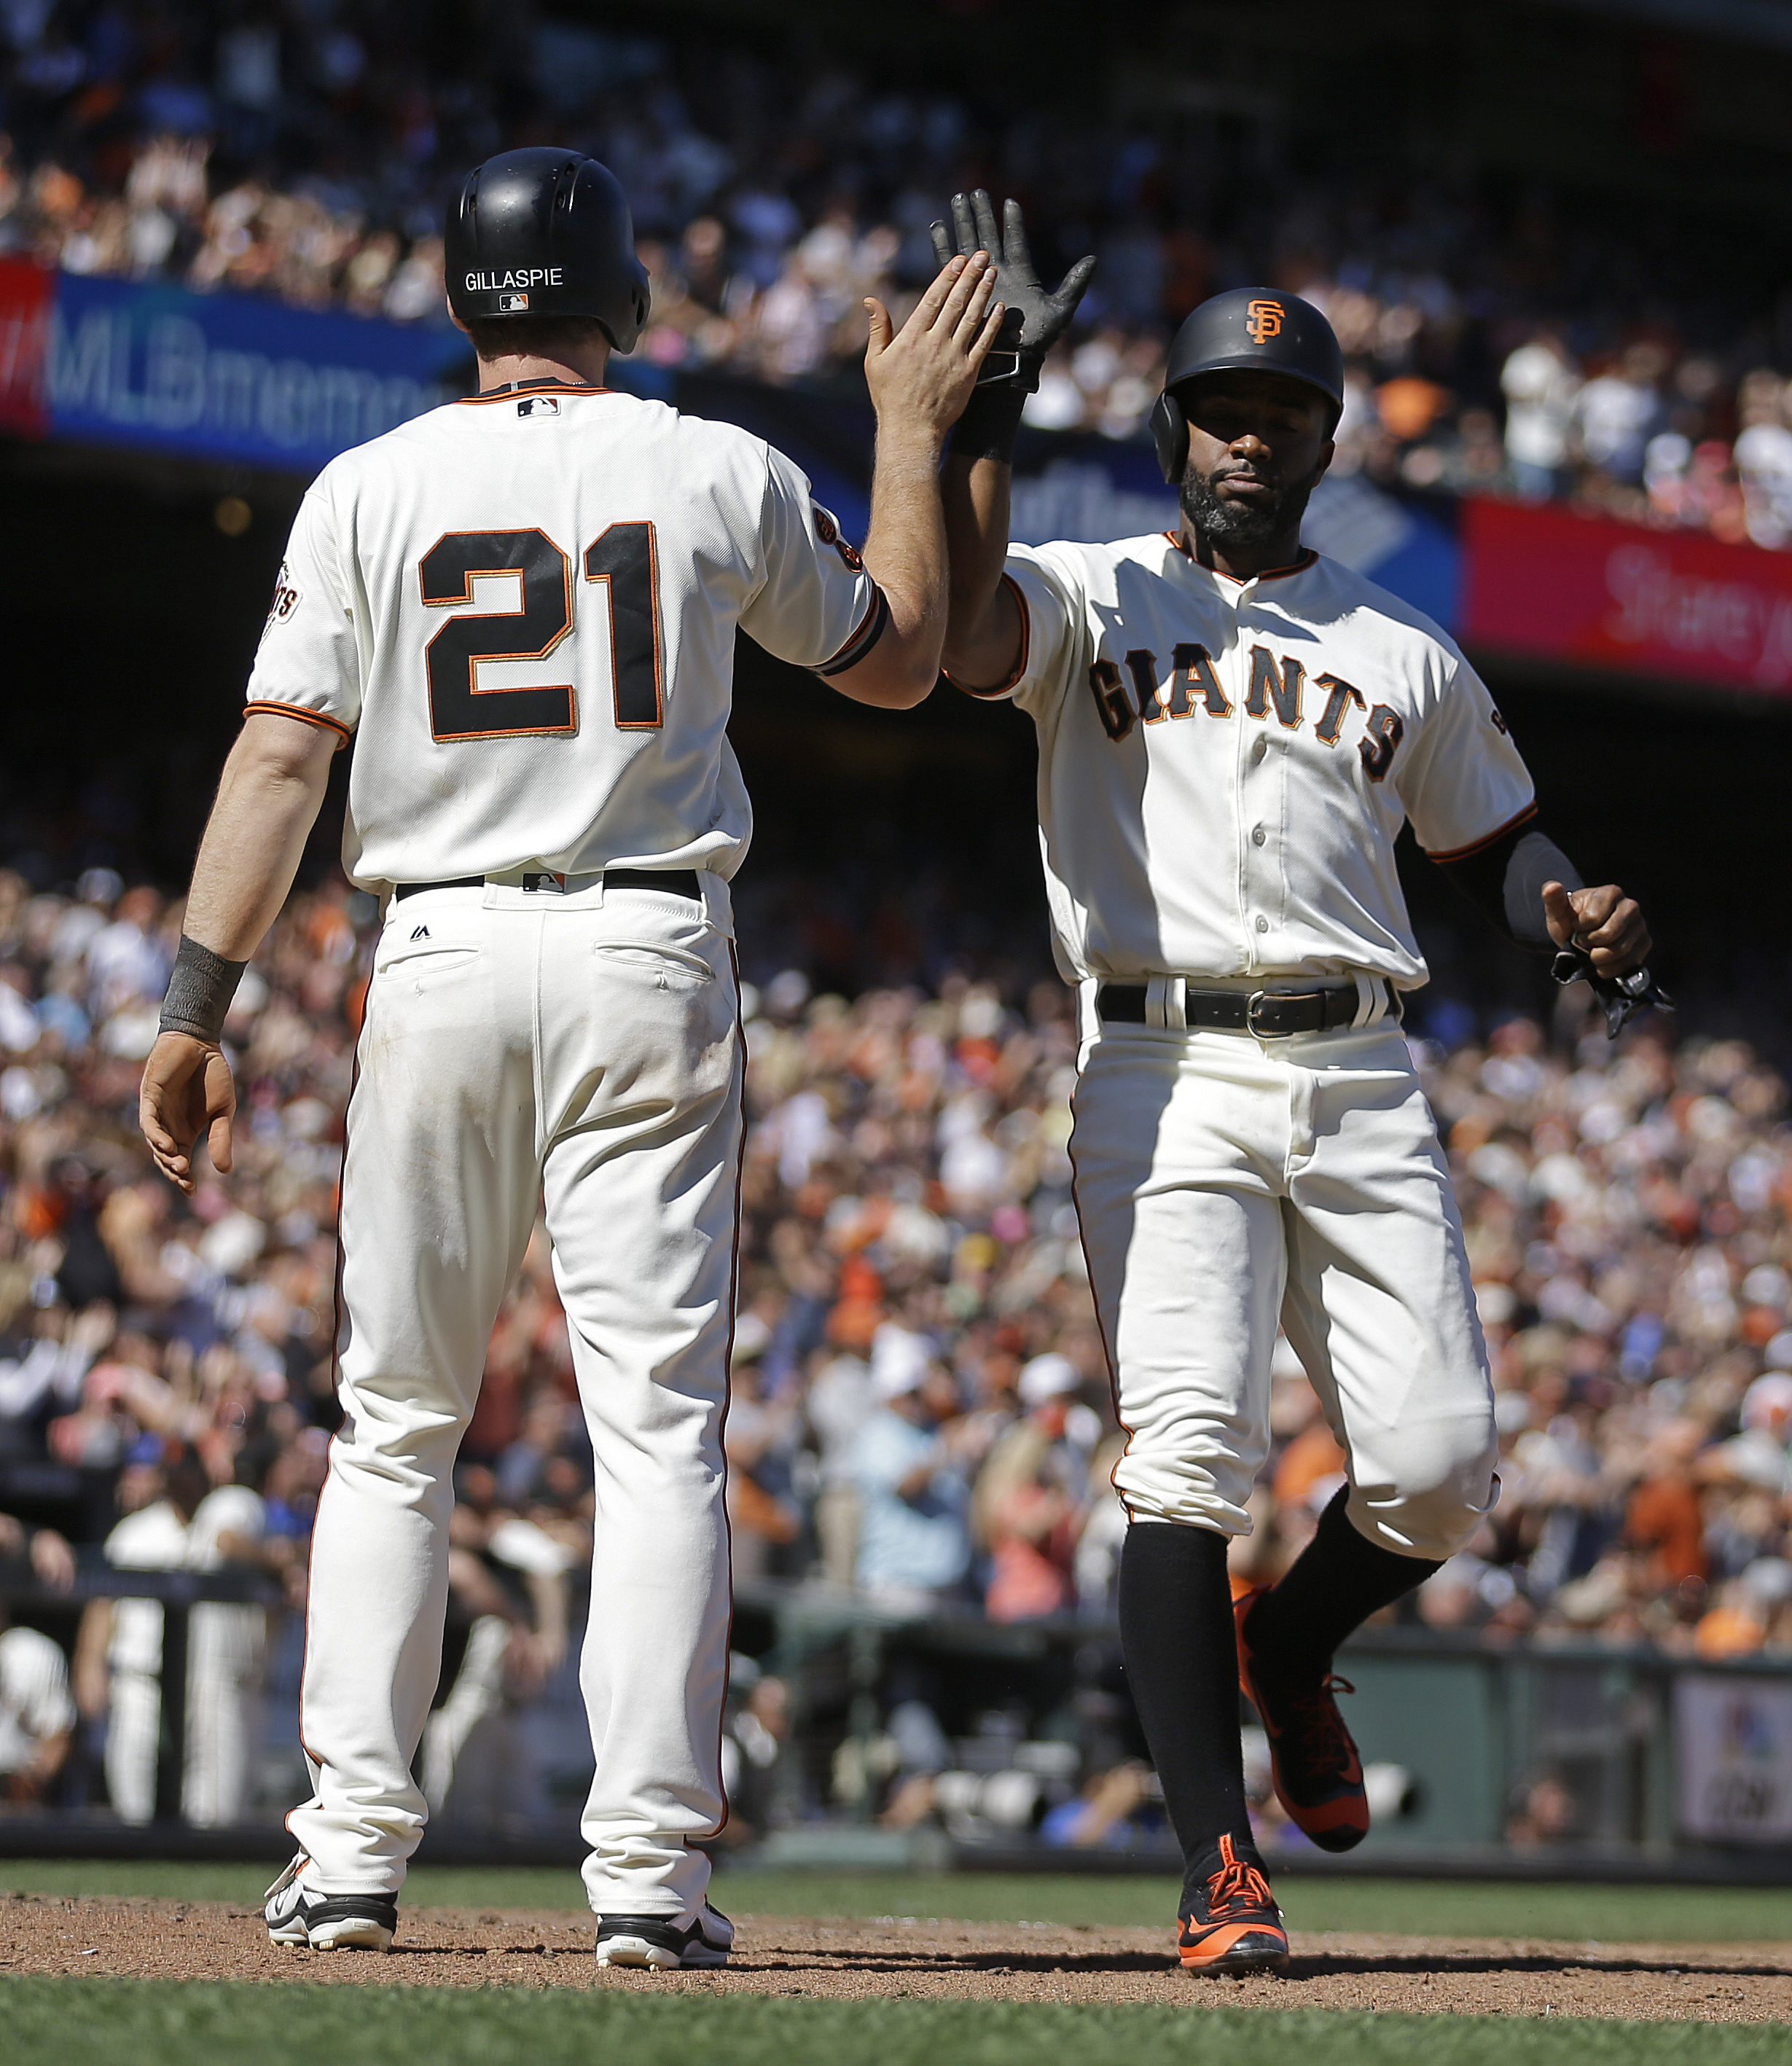 San Francisco Giants' Denard Span, right, and Conor Gillaspie (21) celebrate after scoring against the Atlanta Braves in the seventh inning of a baseball game, Sunday, Aug. 28, 2016, in San Francisco. (AP Photo/Ben Margot)